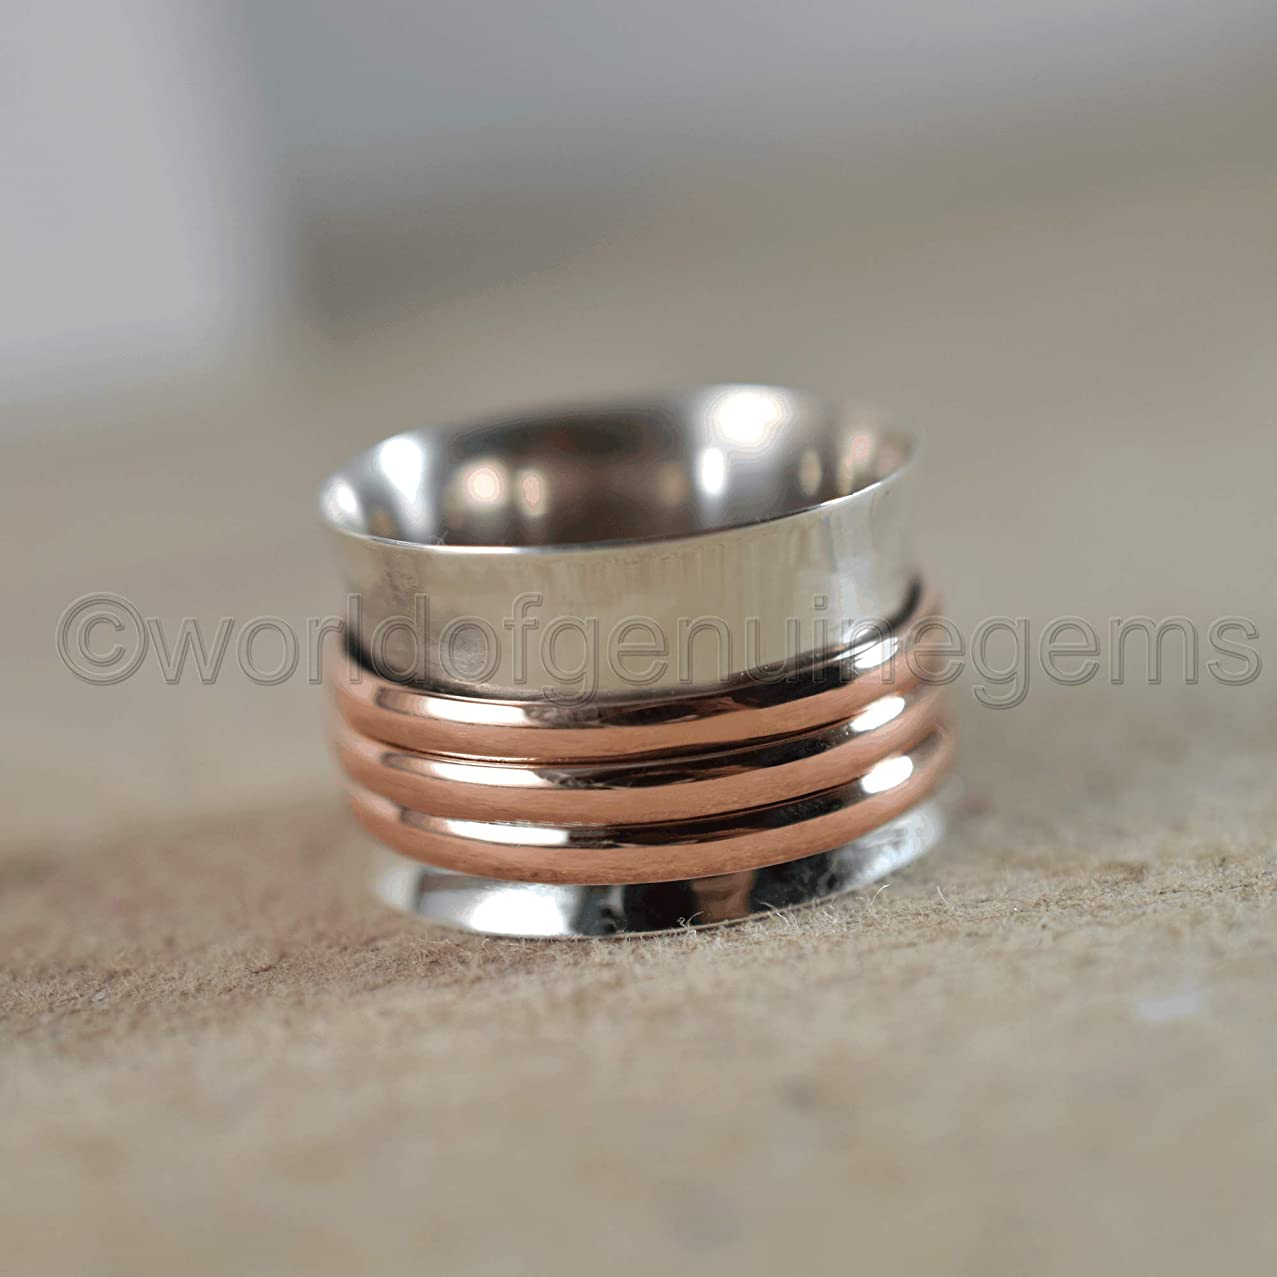 spinner band, 925 sterling silver, two tone spinner band, meditation spinner band, anti-depression band, spiritual spinner band, thumb band, wide band, women ring, fidget band, women spinner band